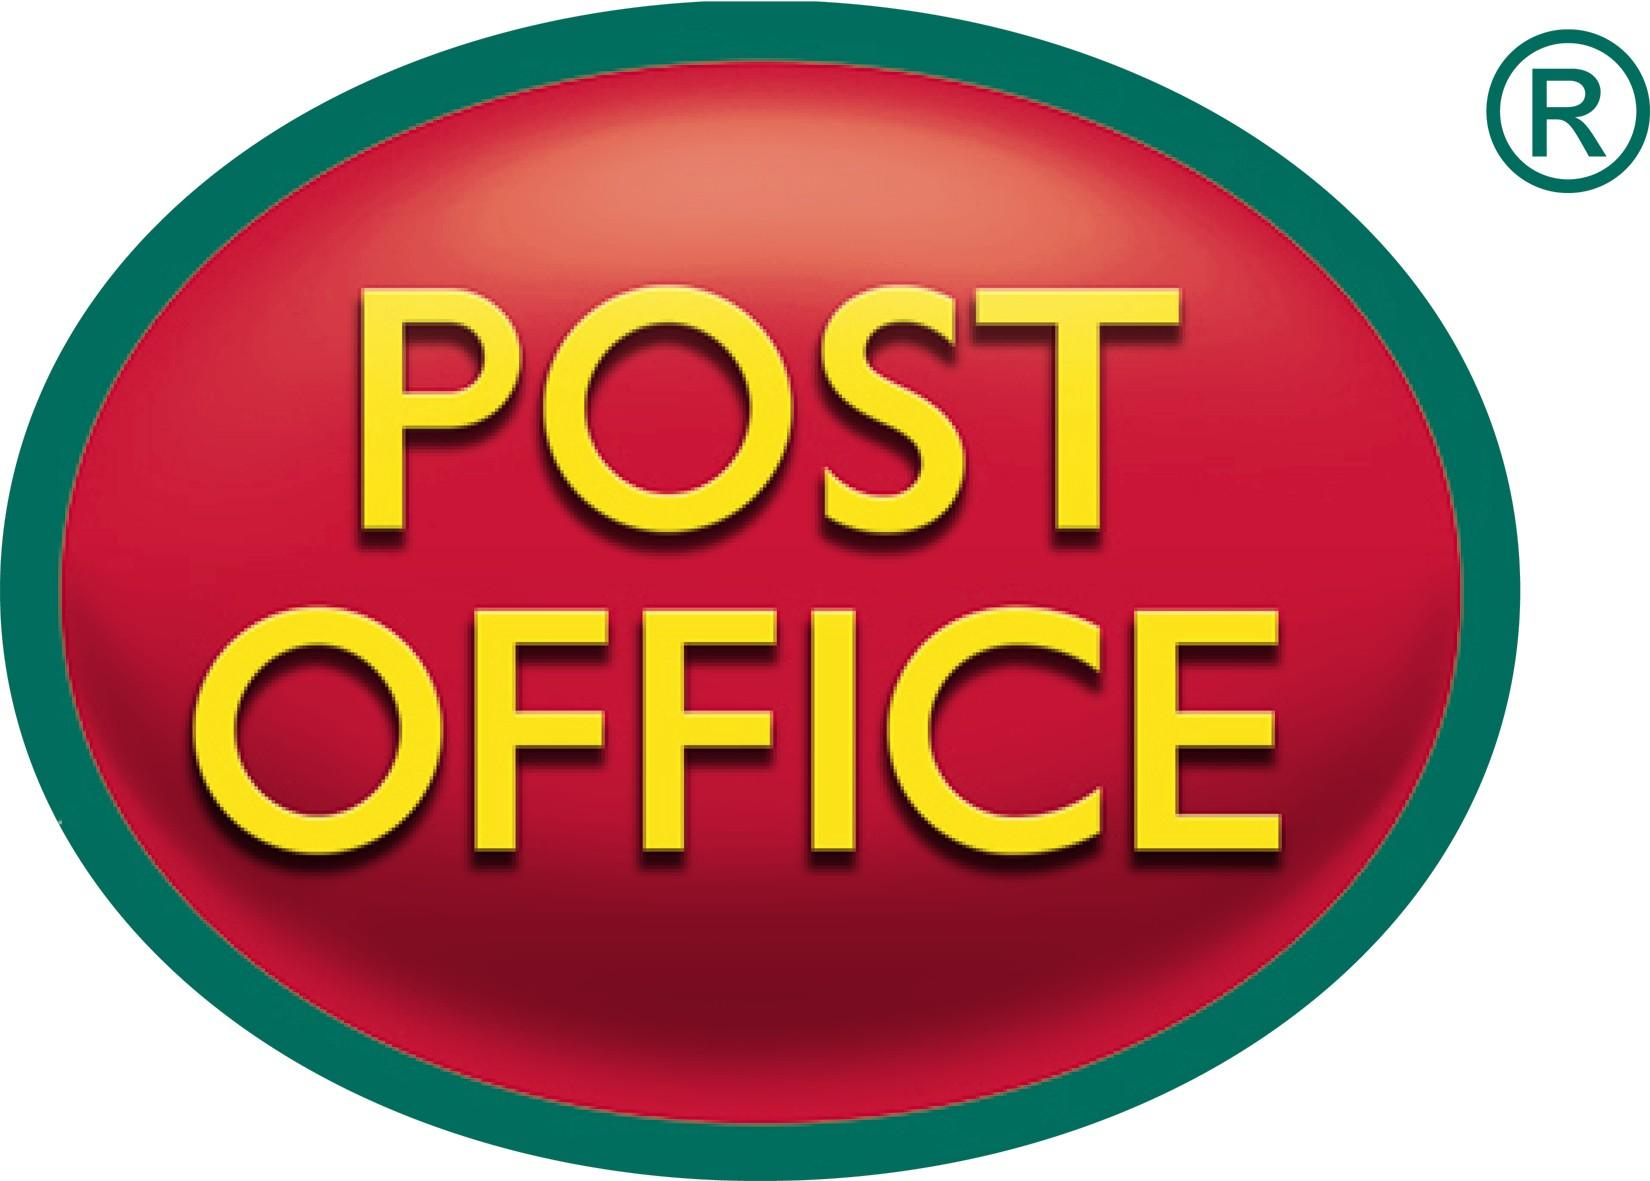 key_postoffice.jpg